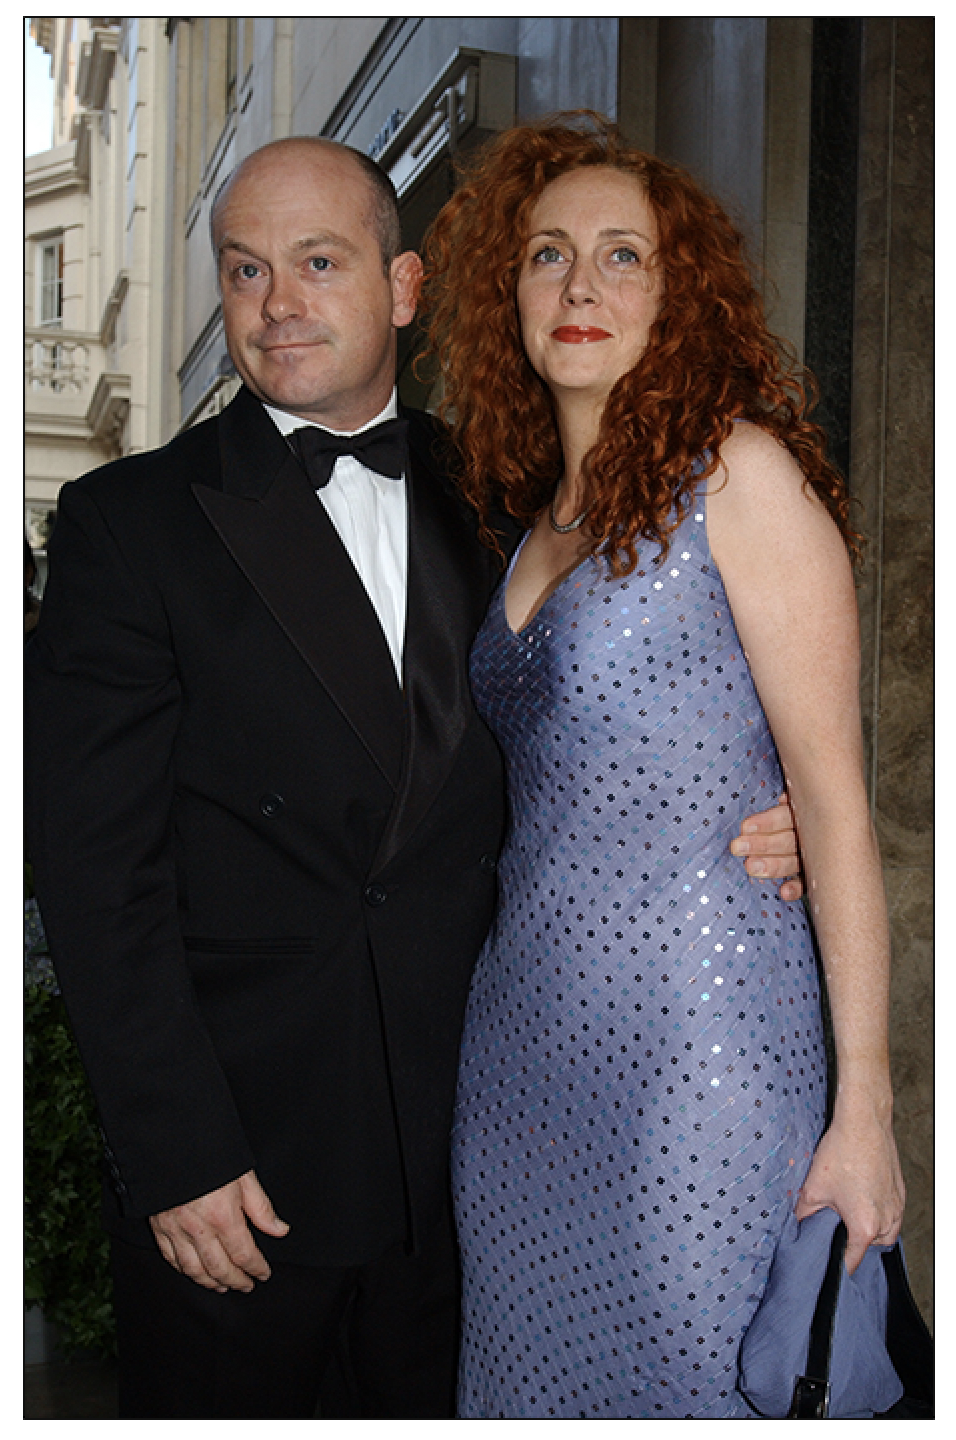 Ross Kemp and his then girlfriend Rebekah Wade pictured in 2002, arriving for the wedding reception of  Sun  columnist Jane Moore and Gary Farrow, at Claridge's Hotel in central London (c) PA